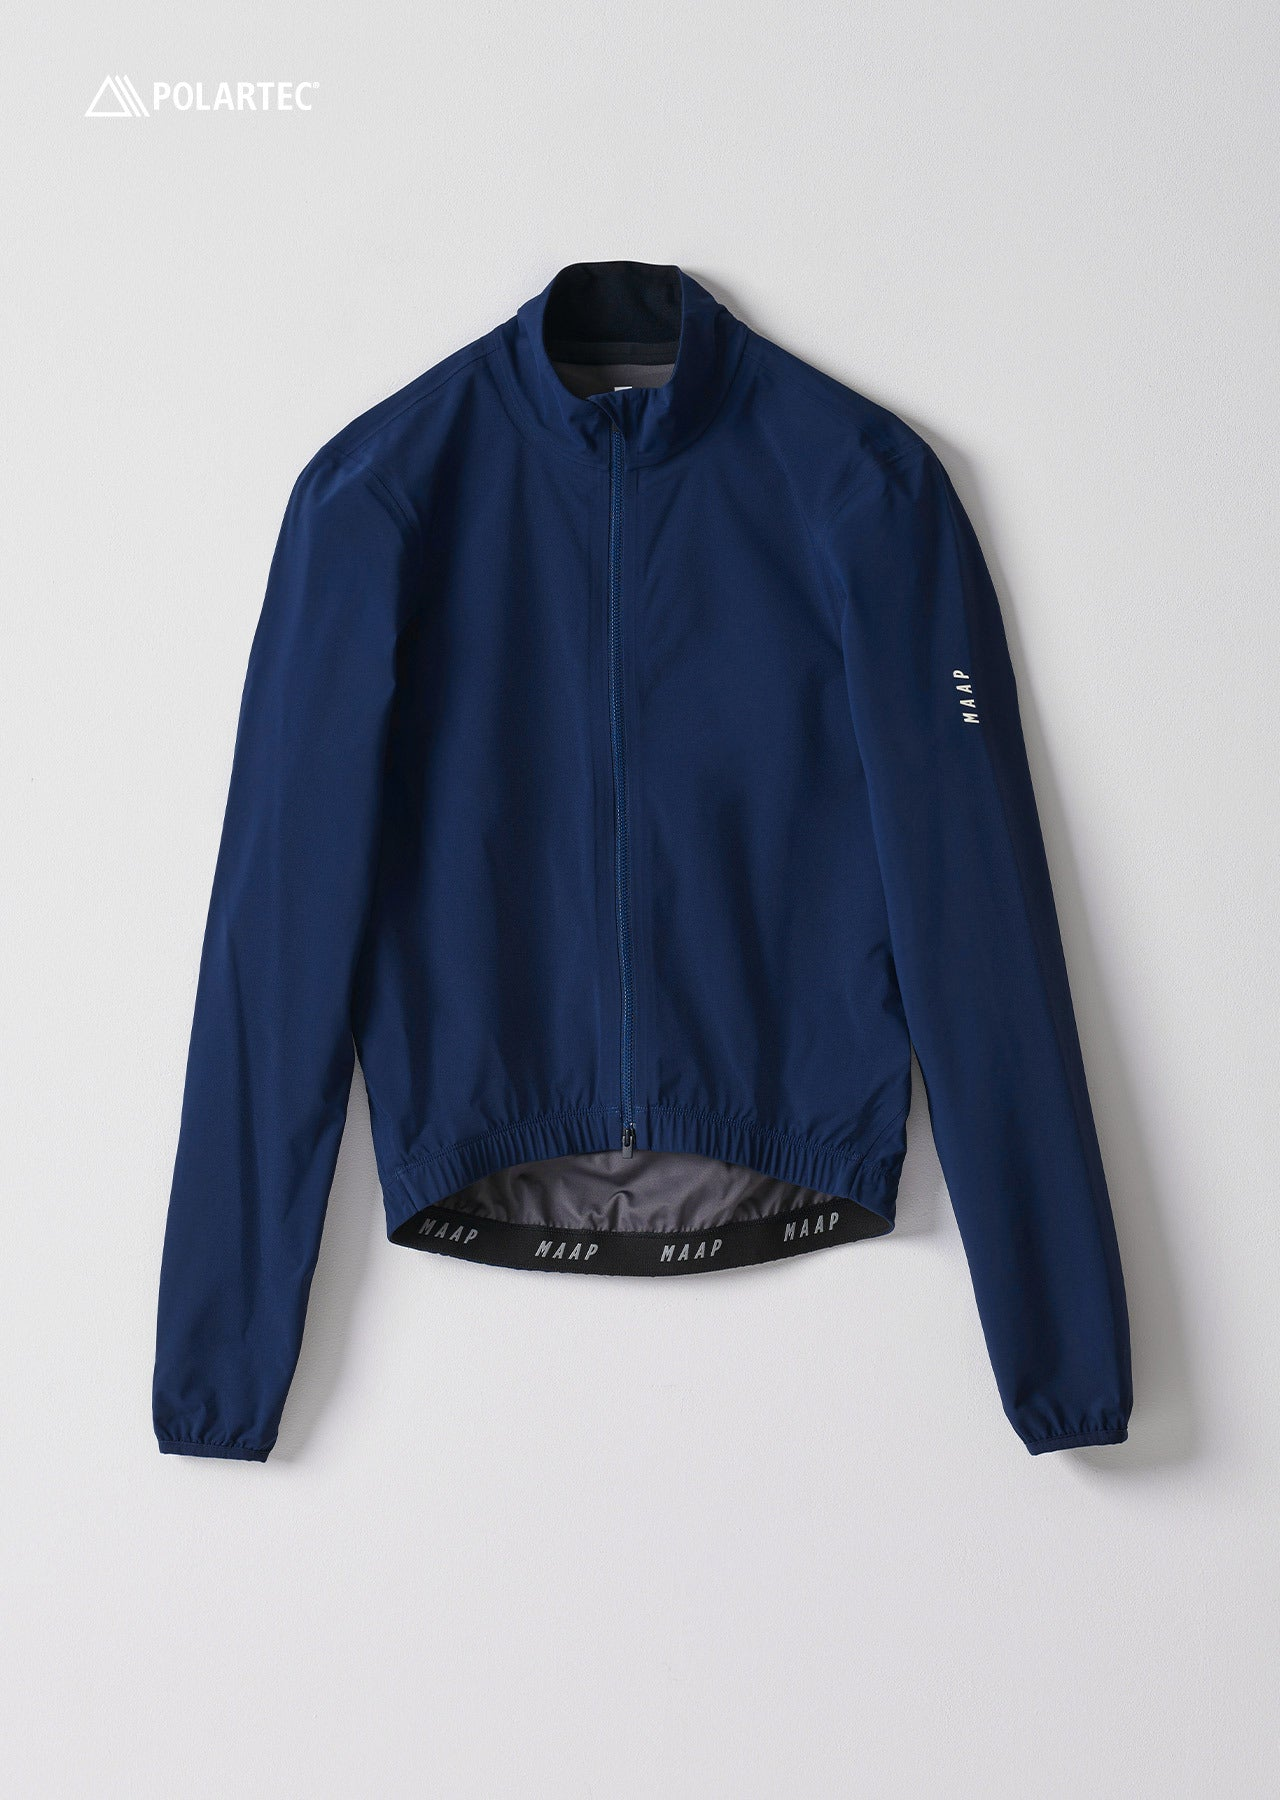 Women's Prime Stow Jacket